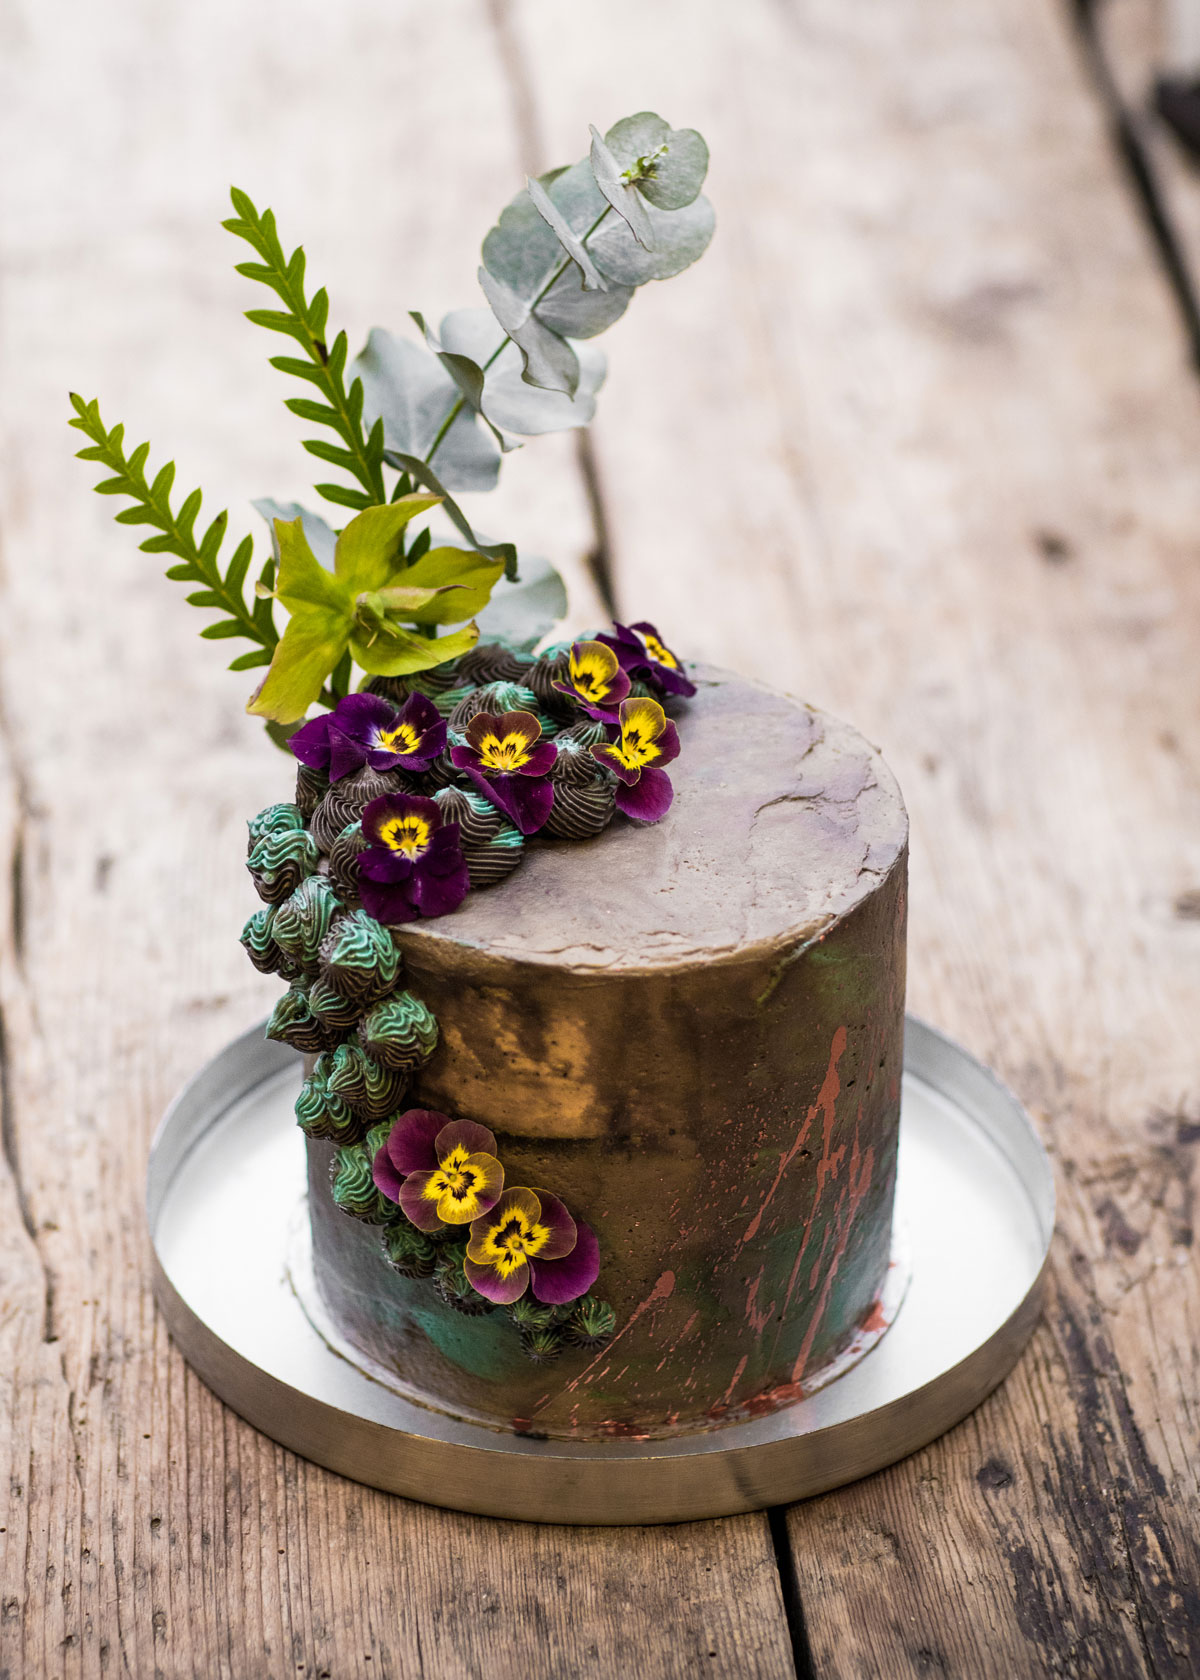 Cake-for-Aros Bostad-front-view1